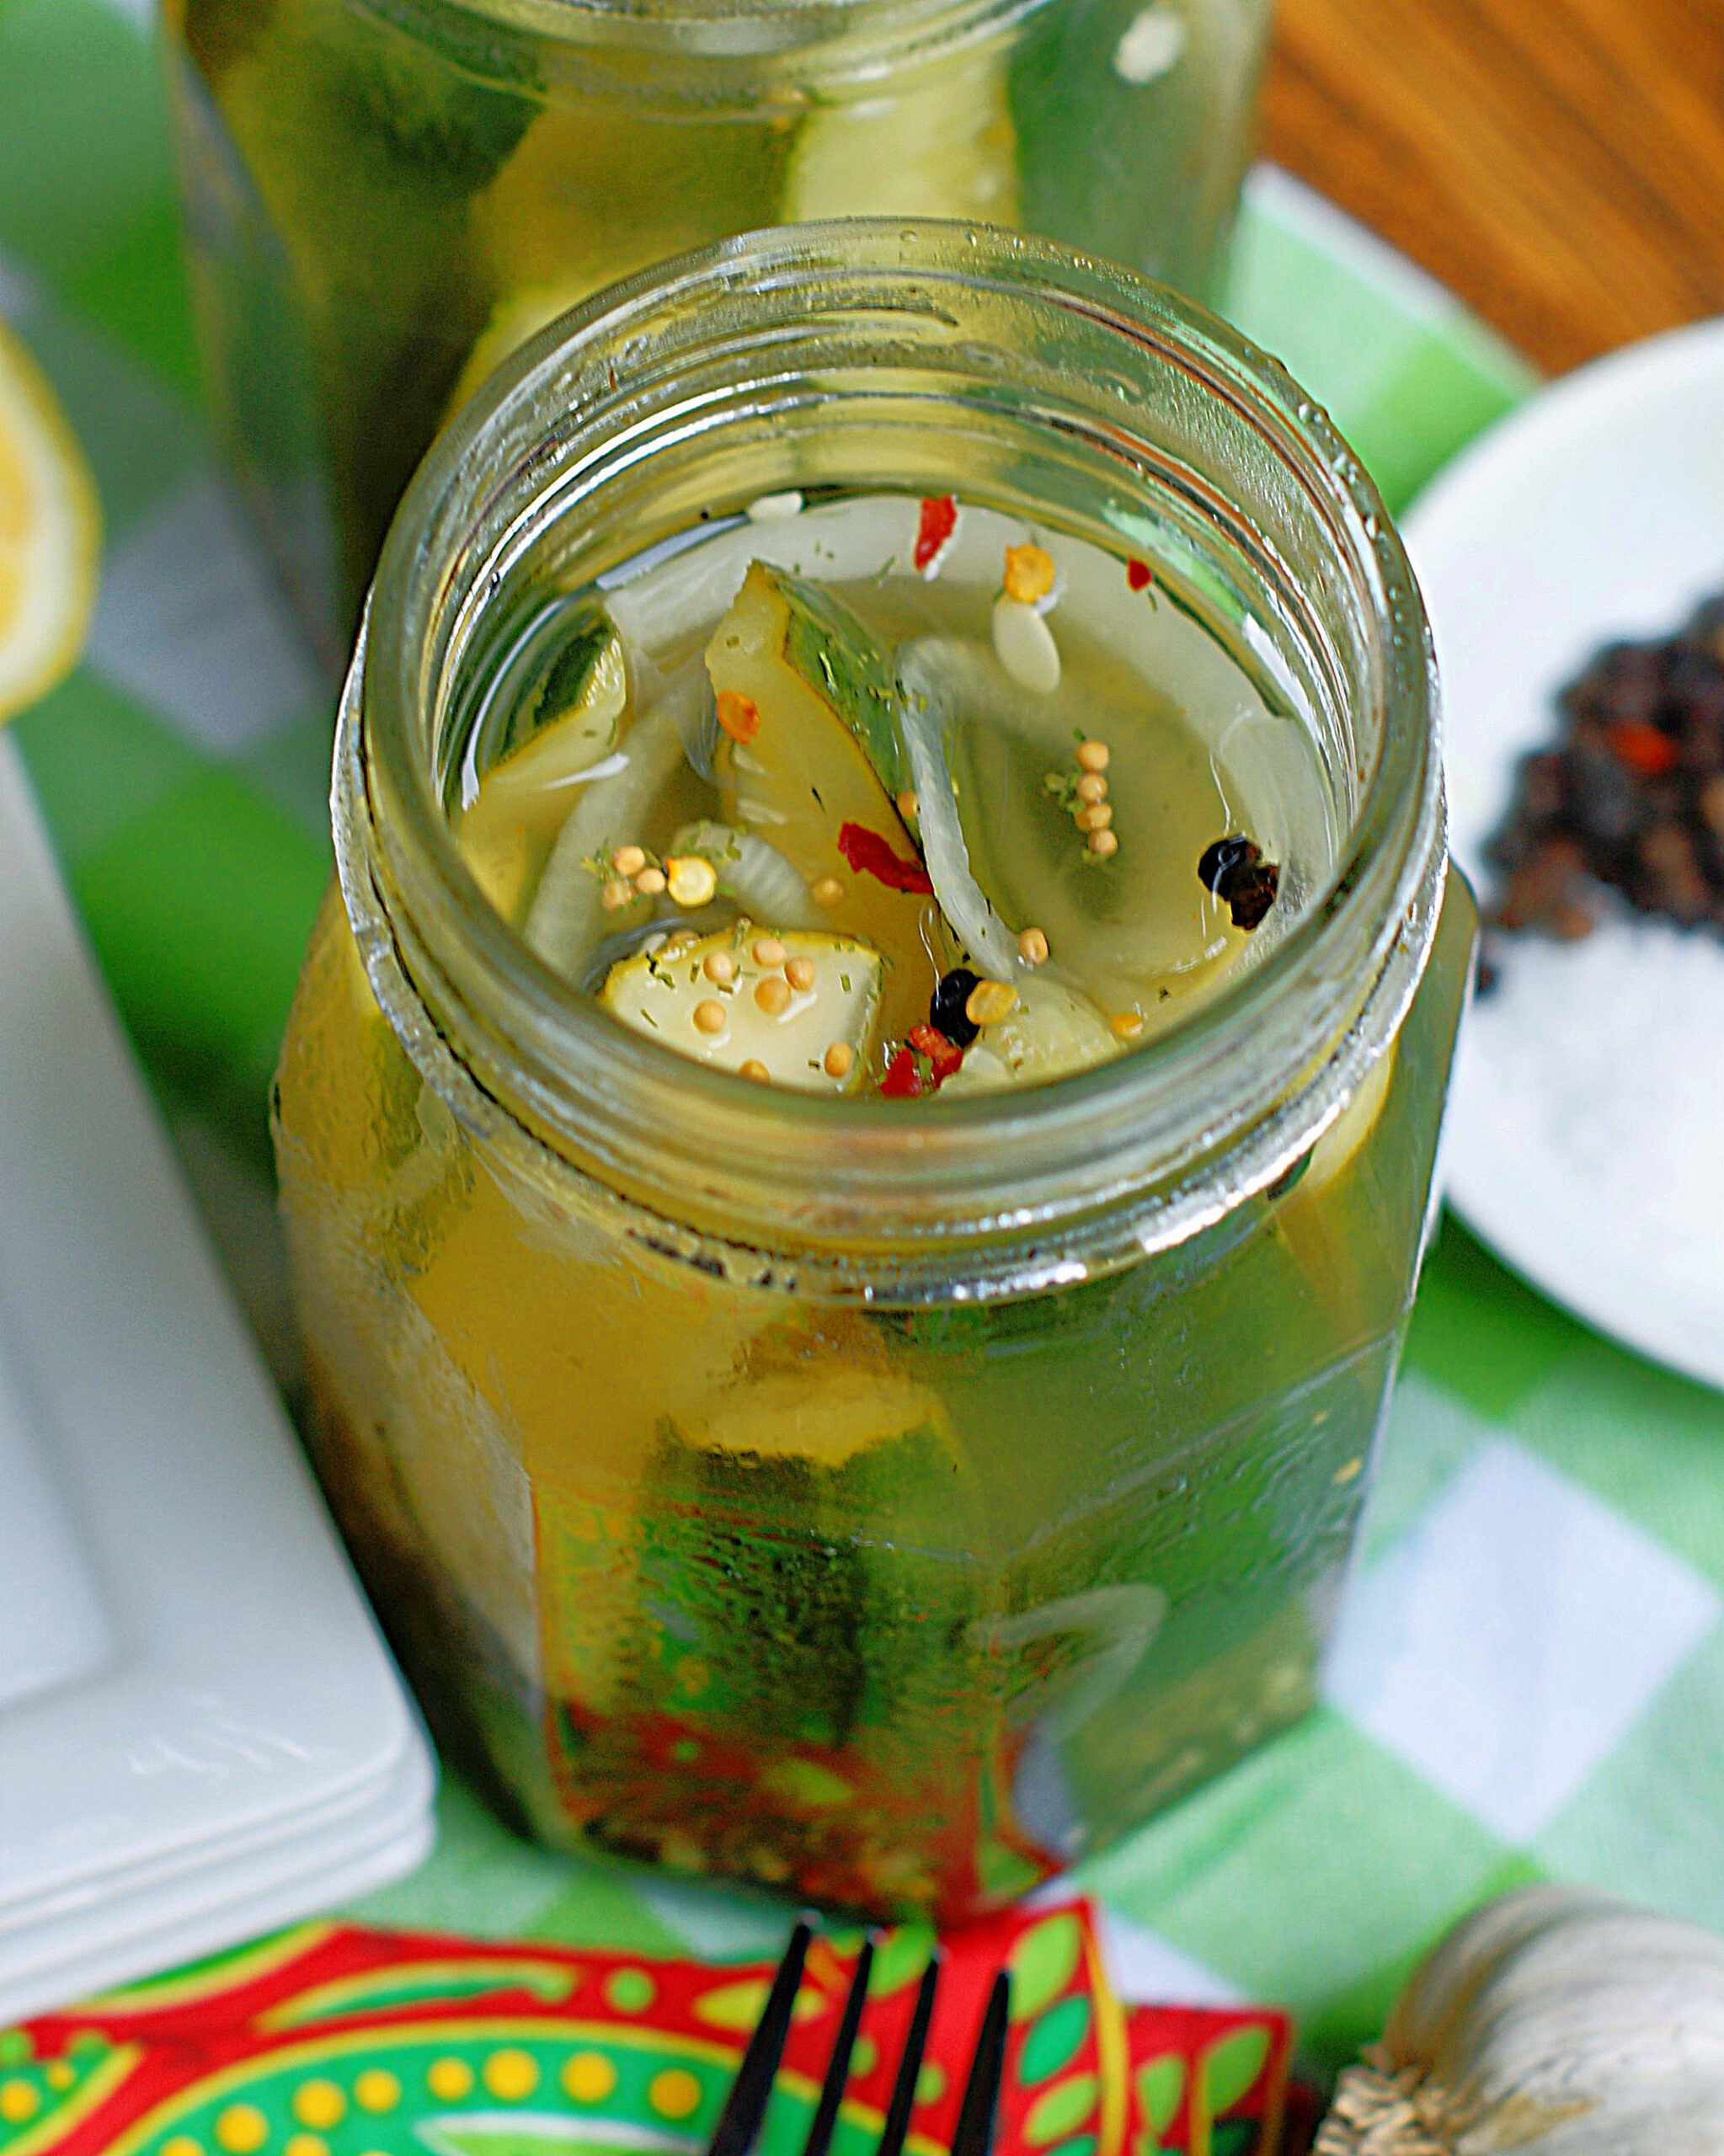 A jar of refrigerator pickles made with lemonade, garlic, pepper and dill.